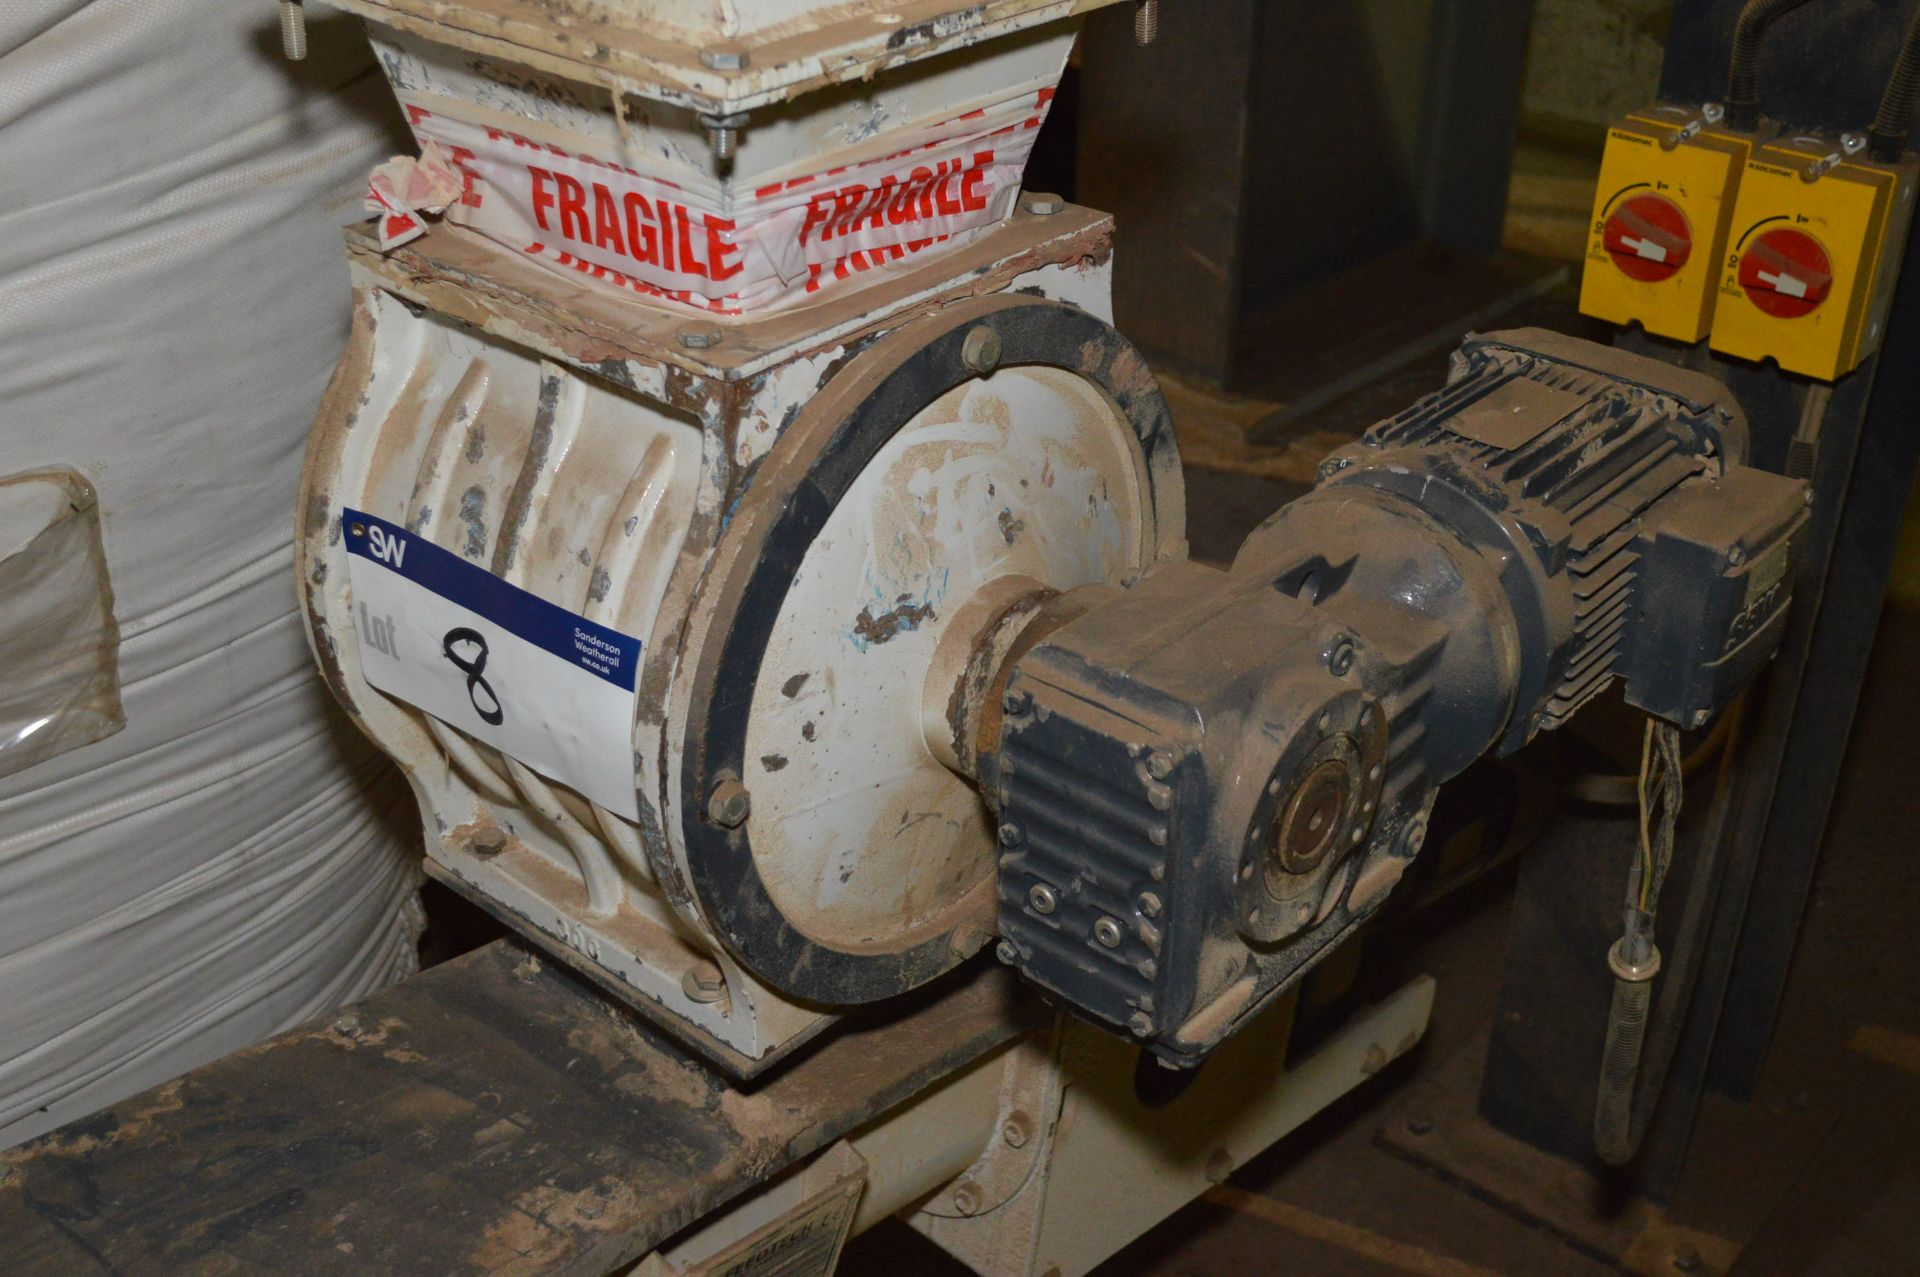 Lot 8 - Geared Motor Driven Rotary Air Seal, approx. 200mm x 200mm on inlet, (please note this lot is part